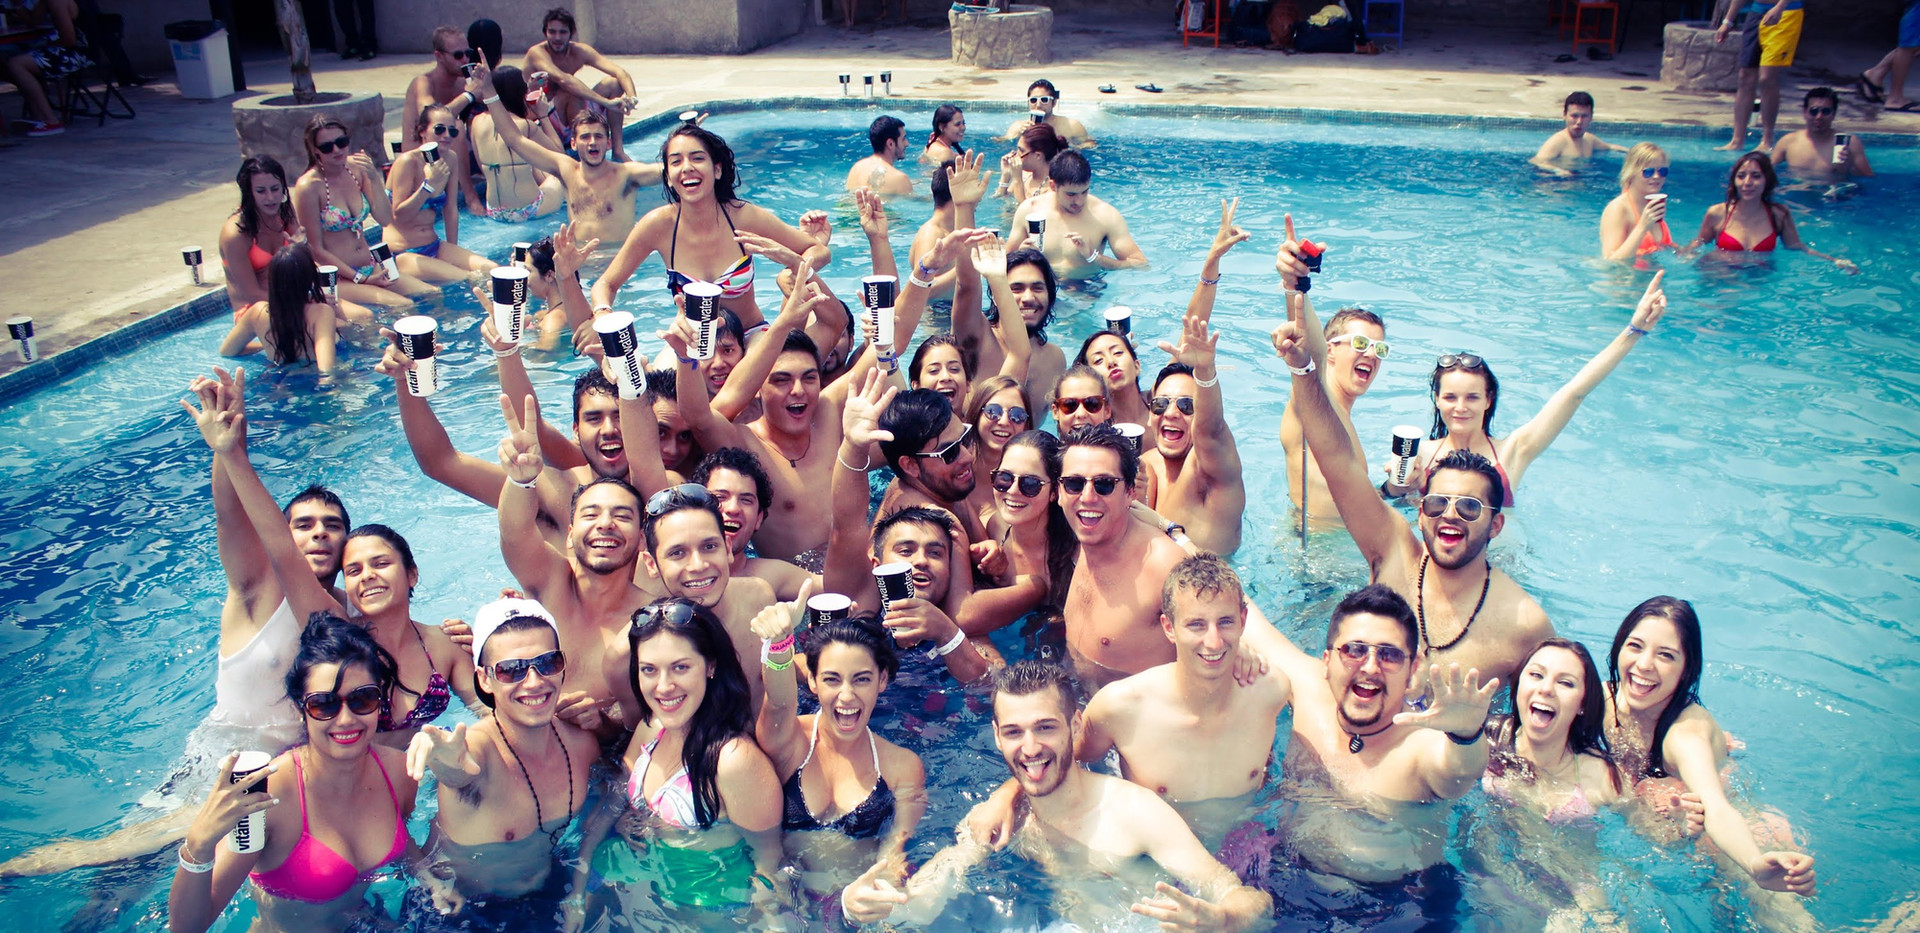 Climactic Entertainment is a dj service in Wilmington NC that offers dj services for corporate events including pool parties.